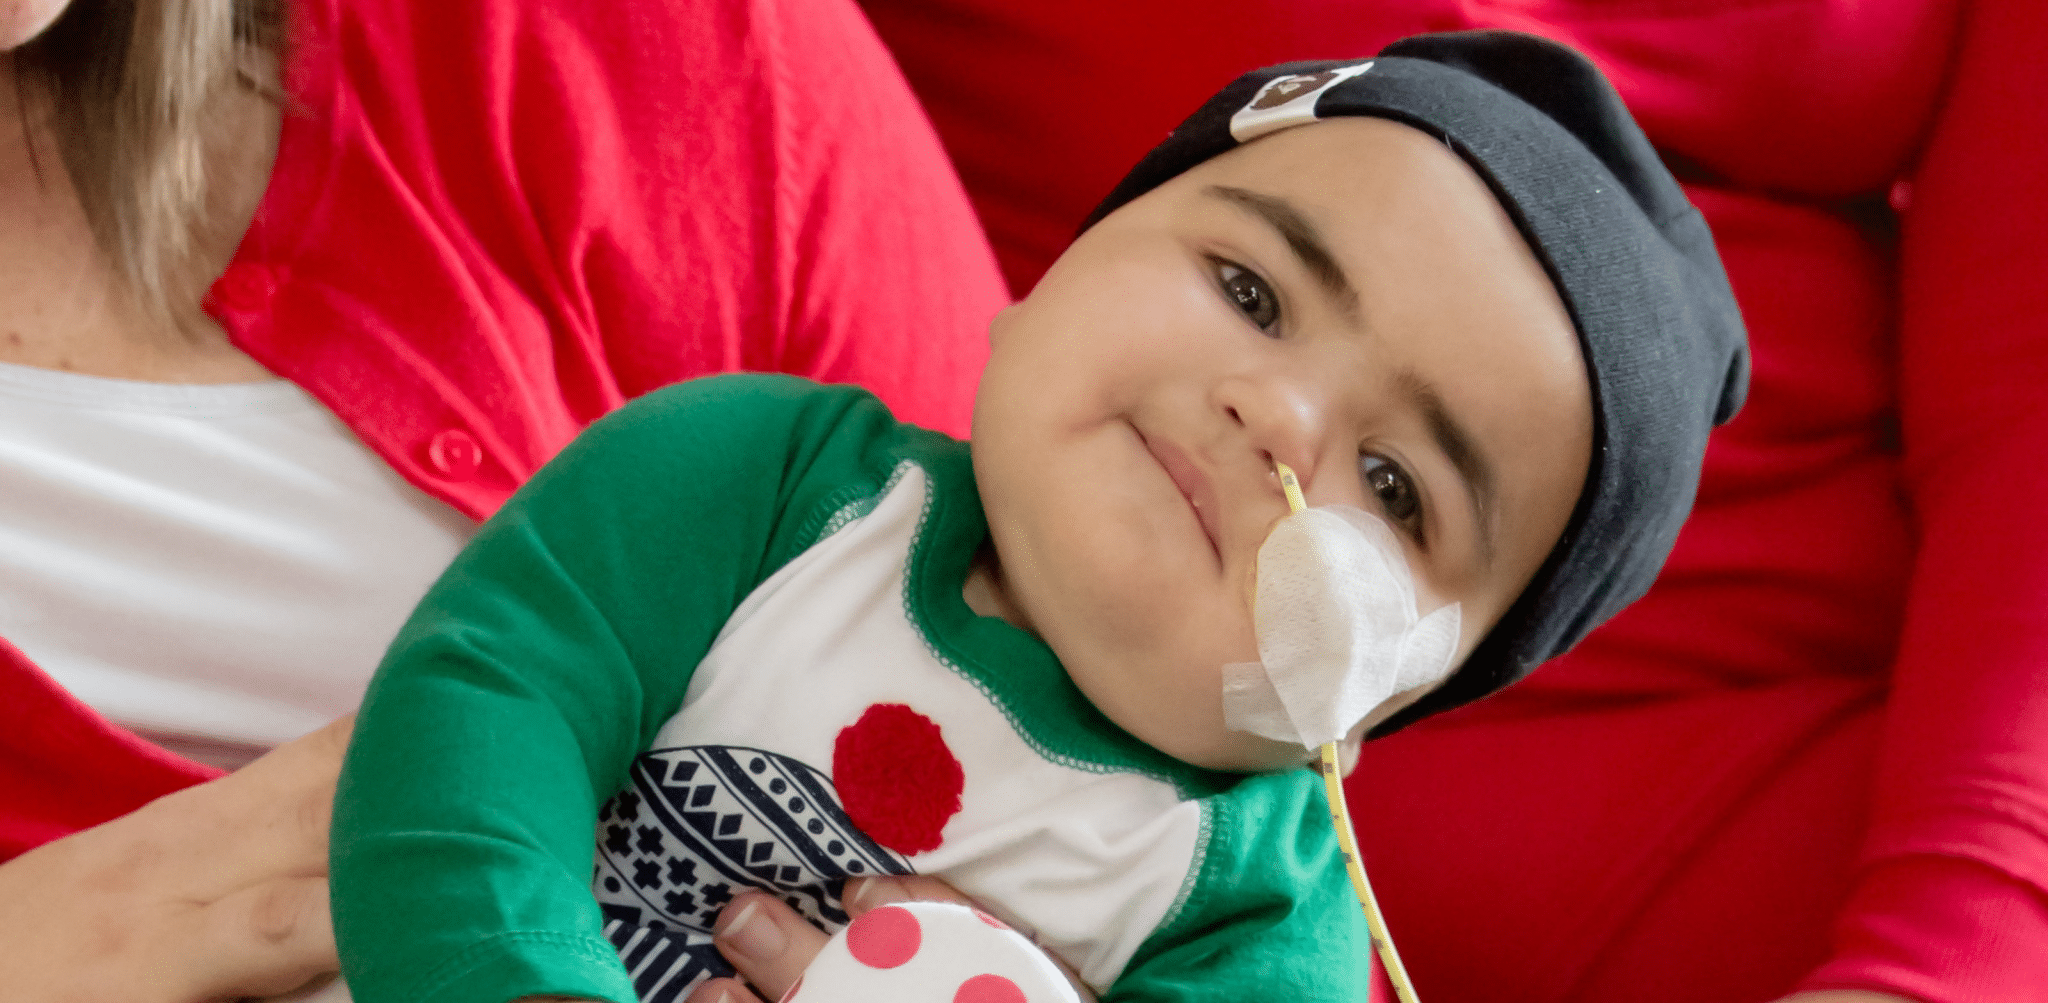 Young child with NG tube smiling, heart sticker holding tube onto face